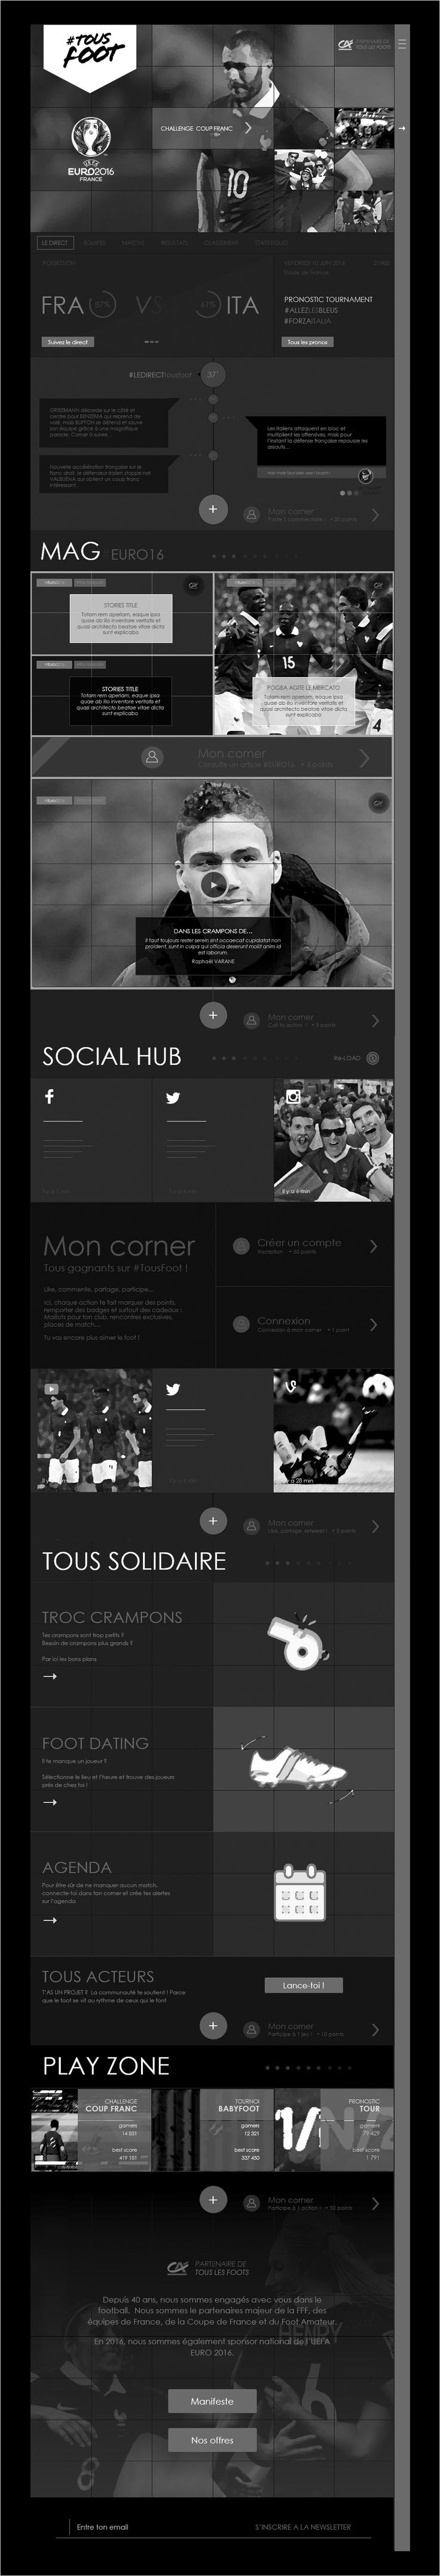 wireframe euro 2016 le match en direct tous foot credit agricole